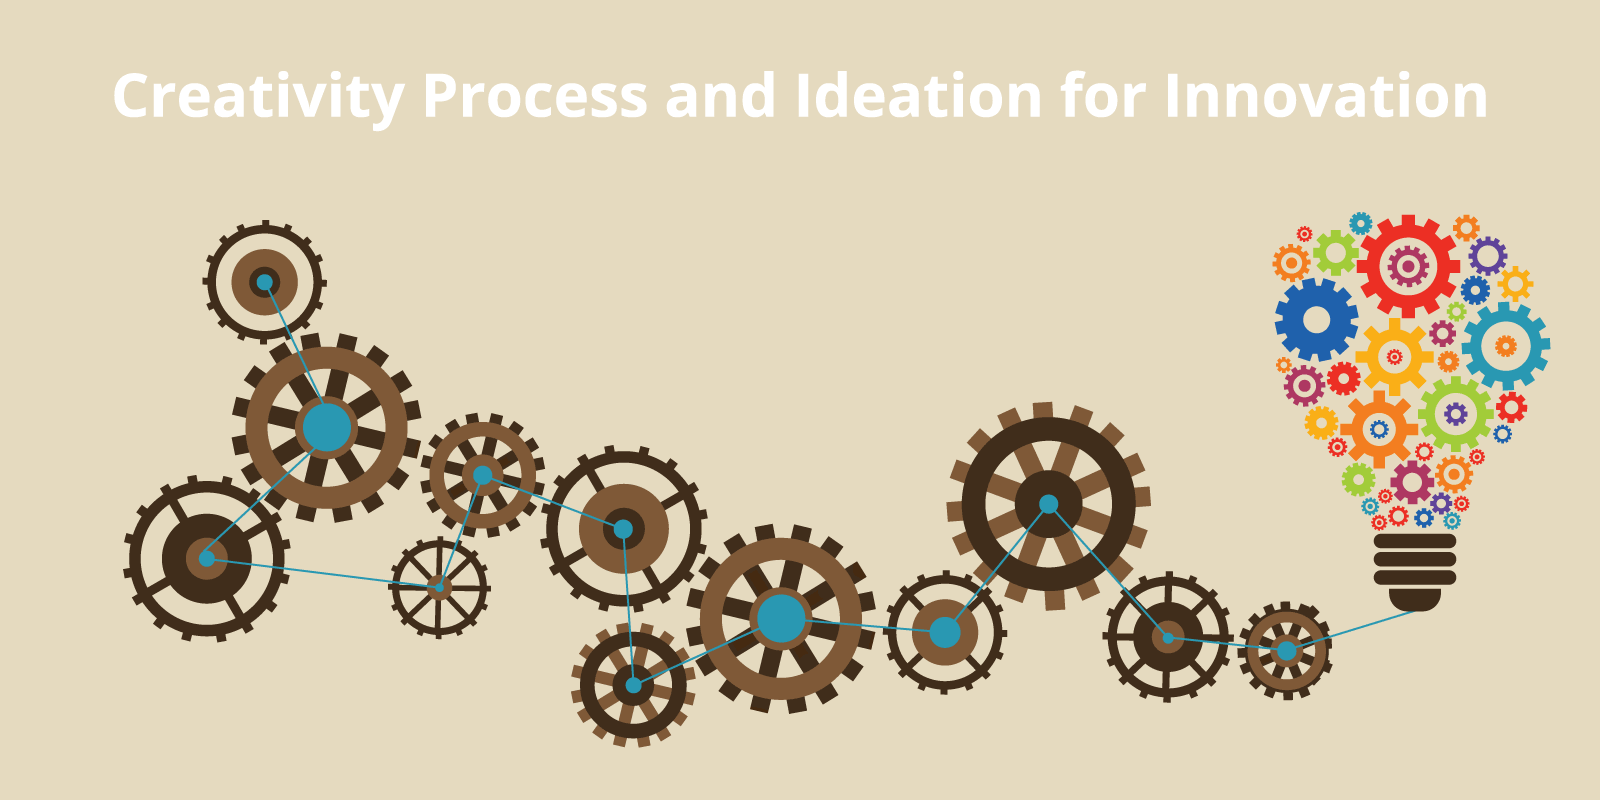 Creativity-process-&-Ideation-for-Innovation